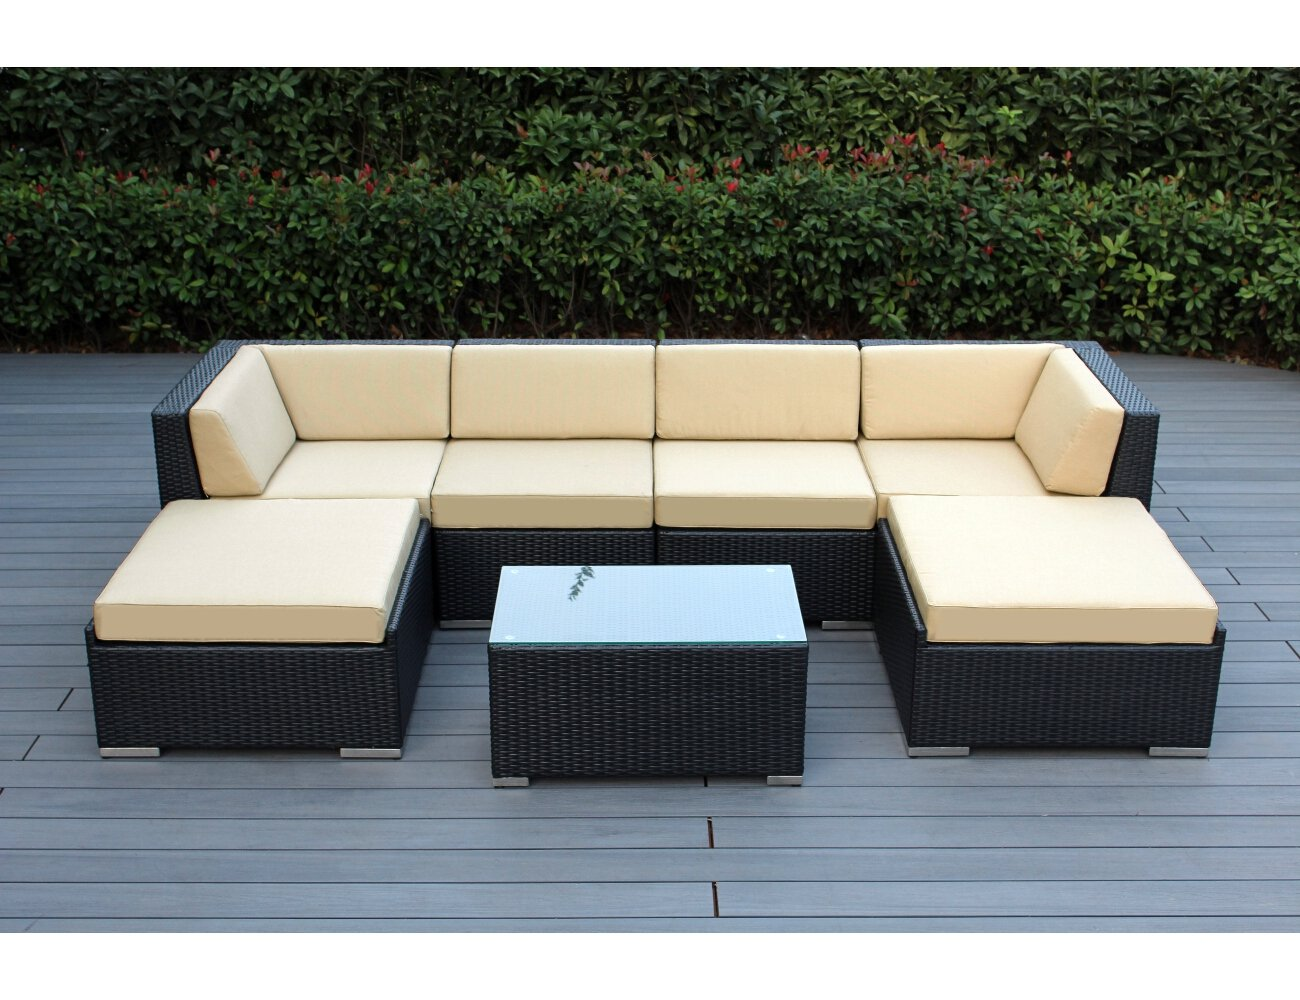 Wicker patio furniture sets weatherproof outdoor living for Wicker patio furniture